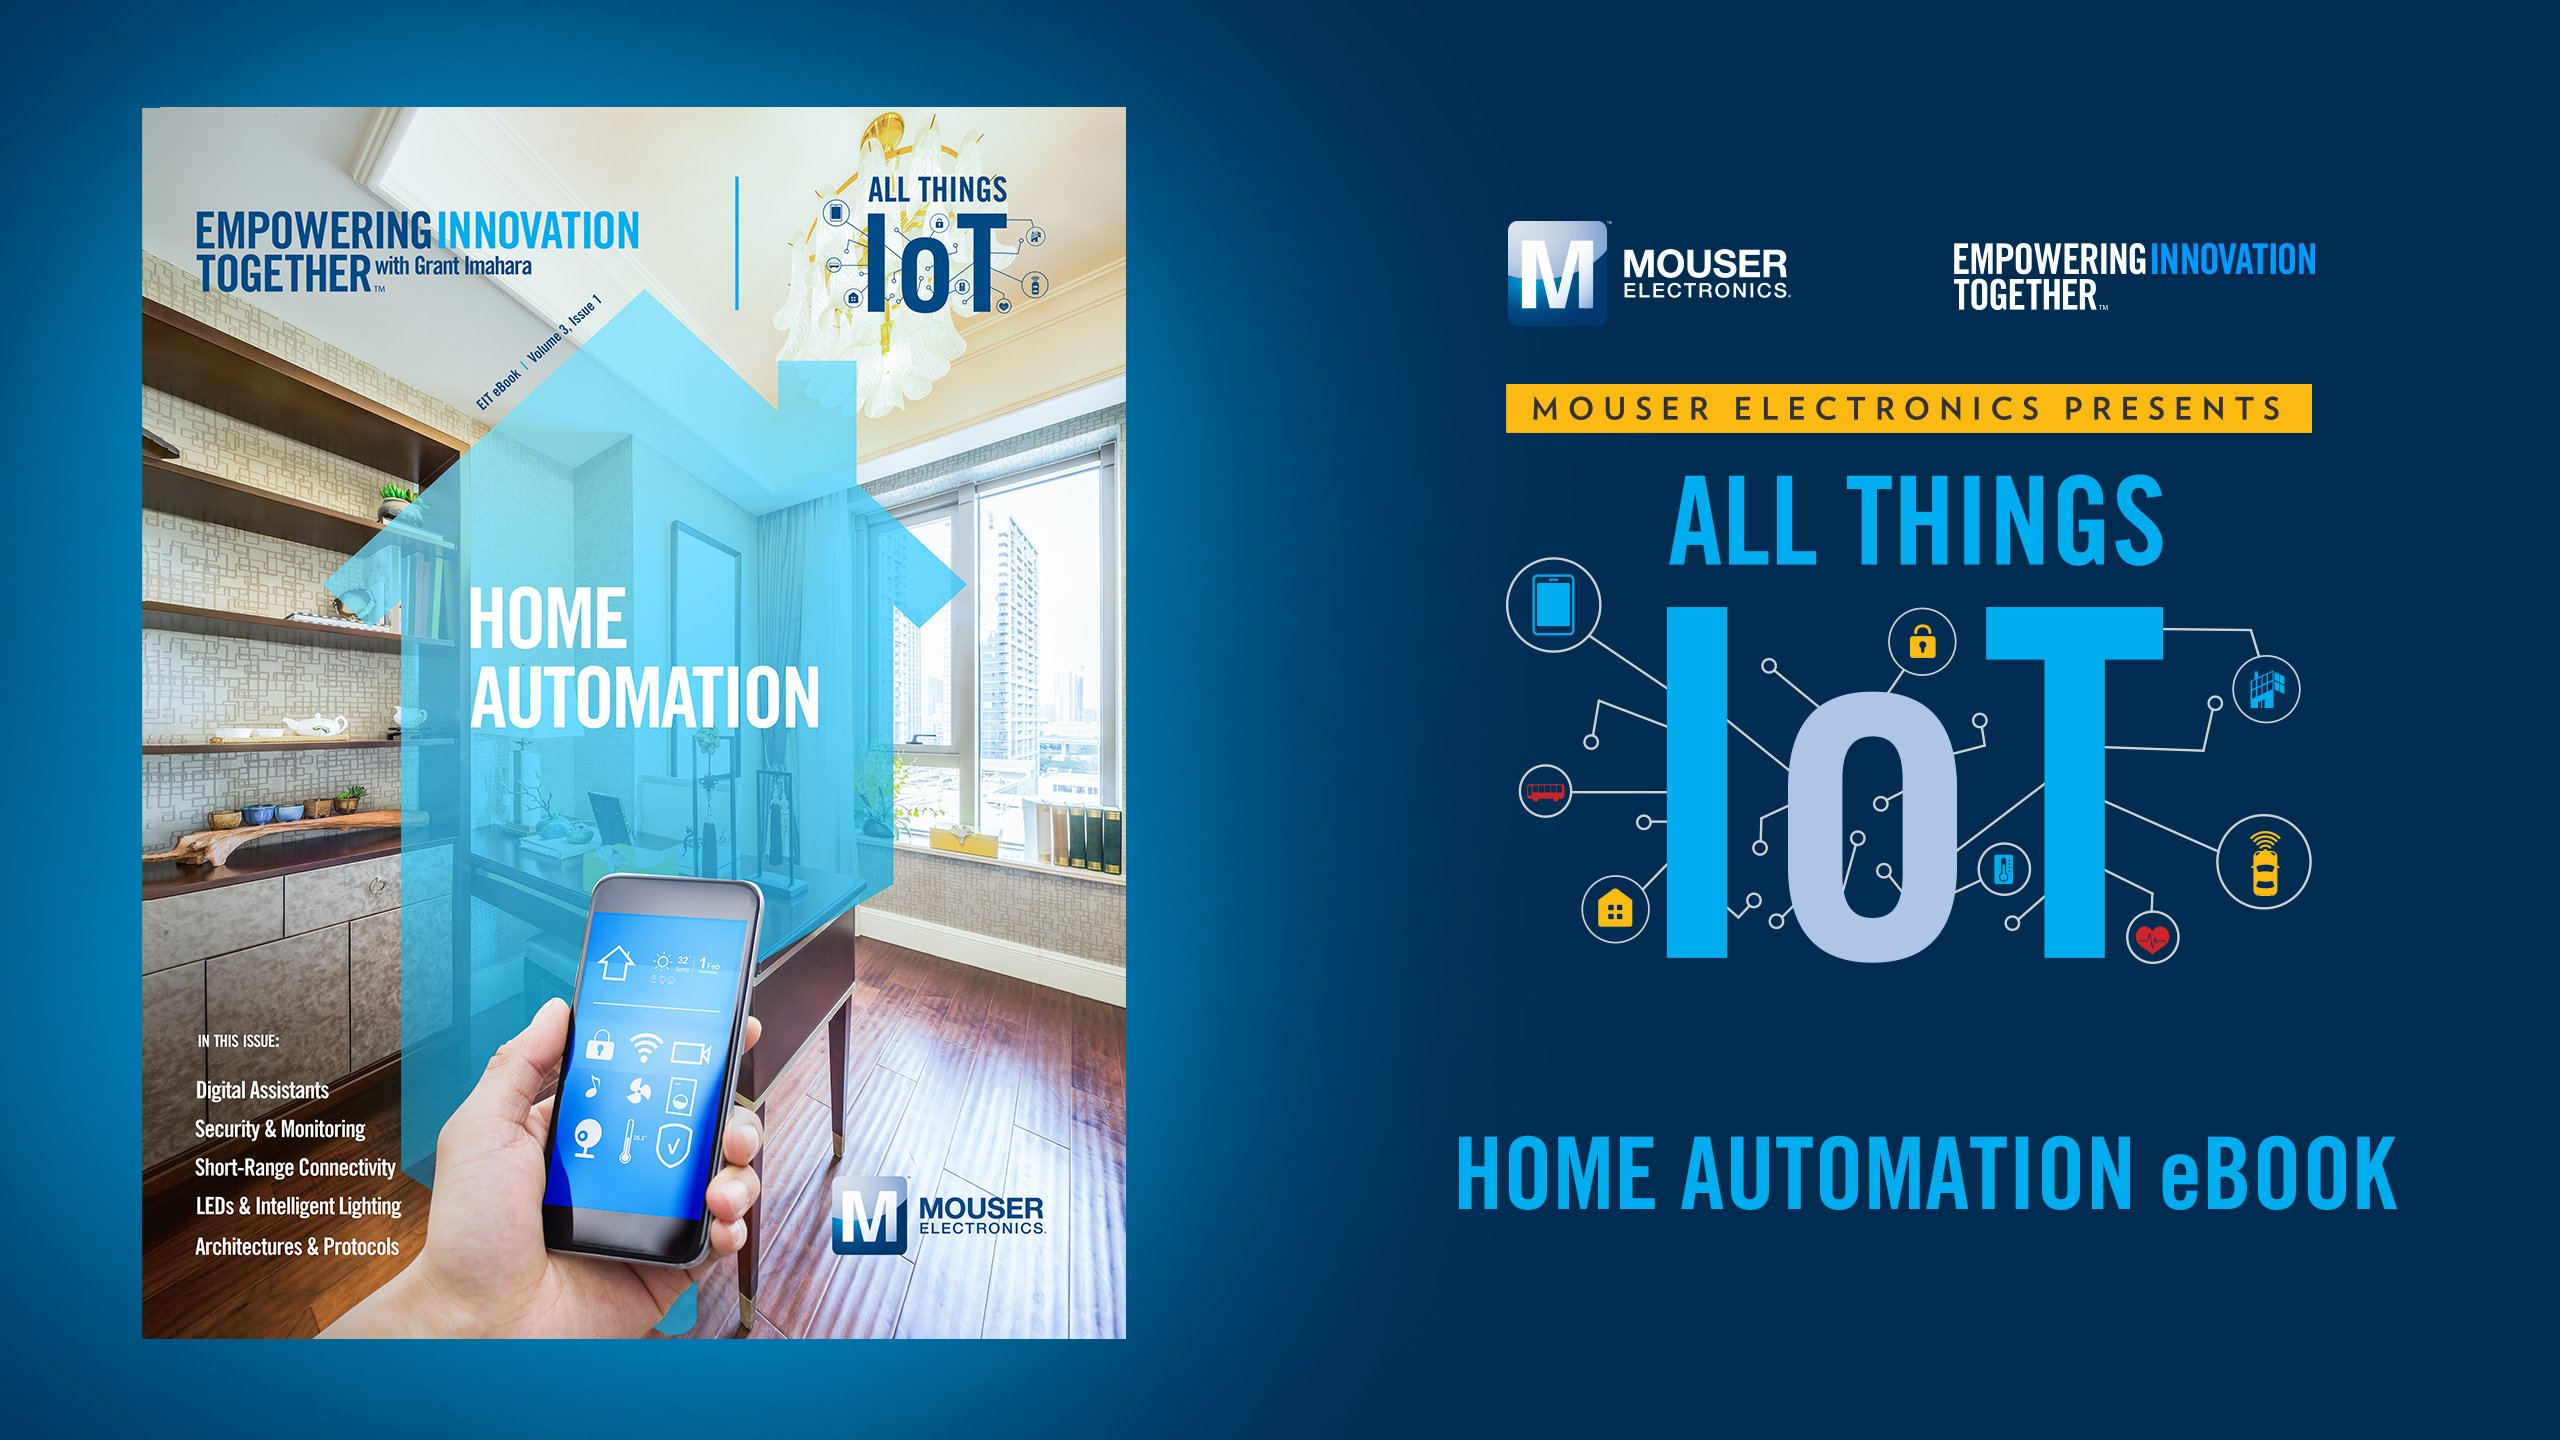 Mouser Electronics Debuts New E-Book on Home Automation as Part of All Things IoT Series